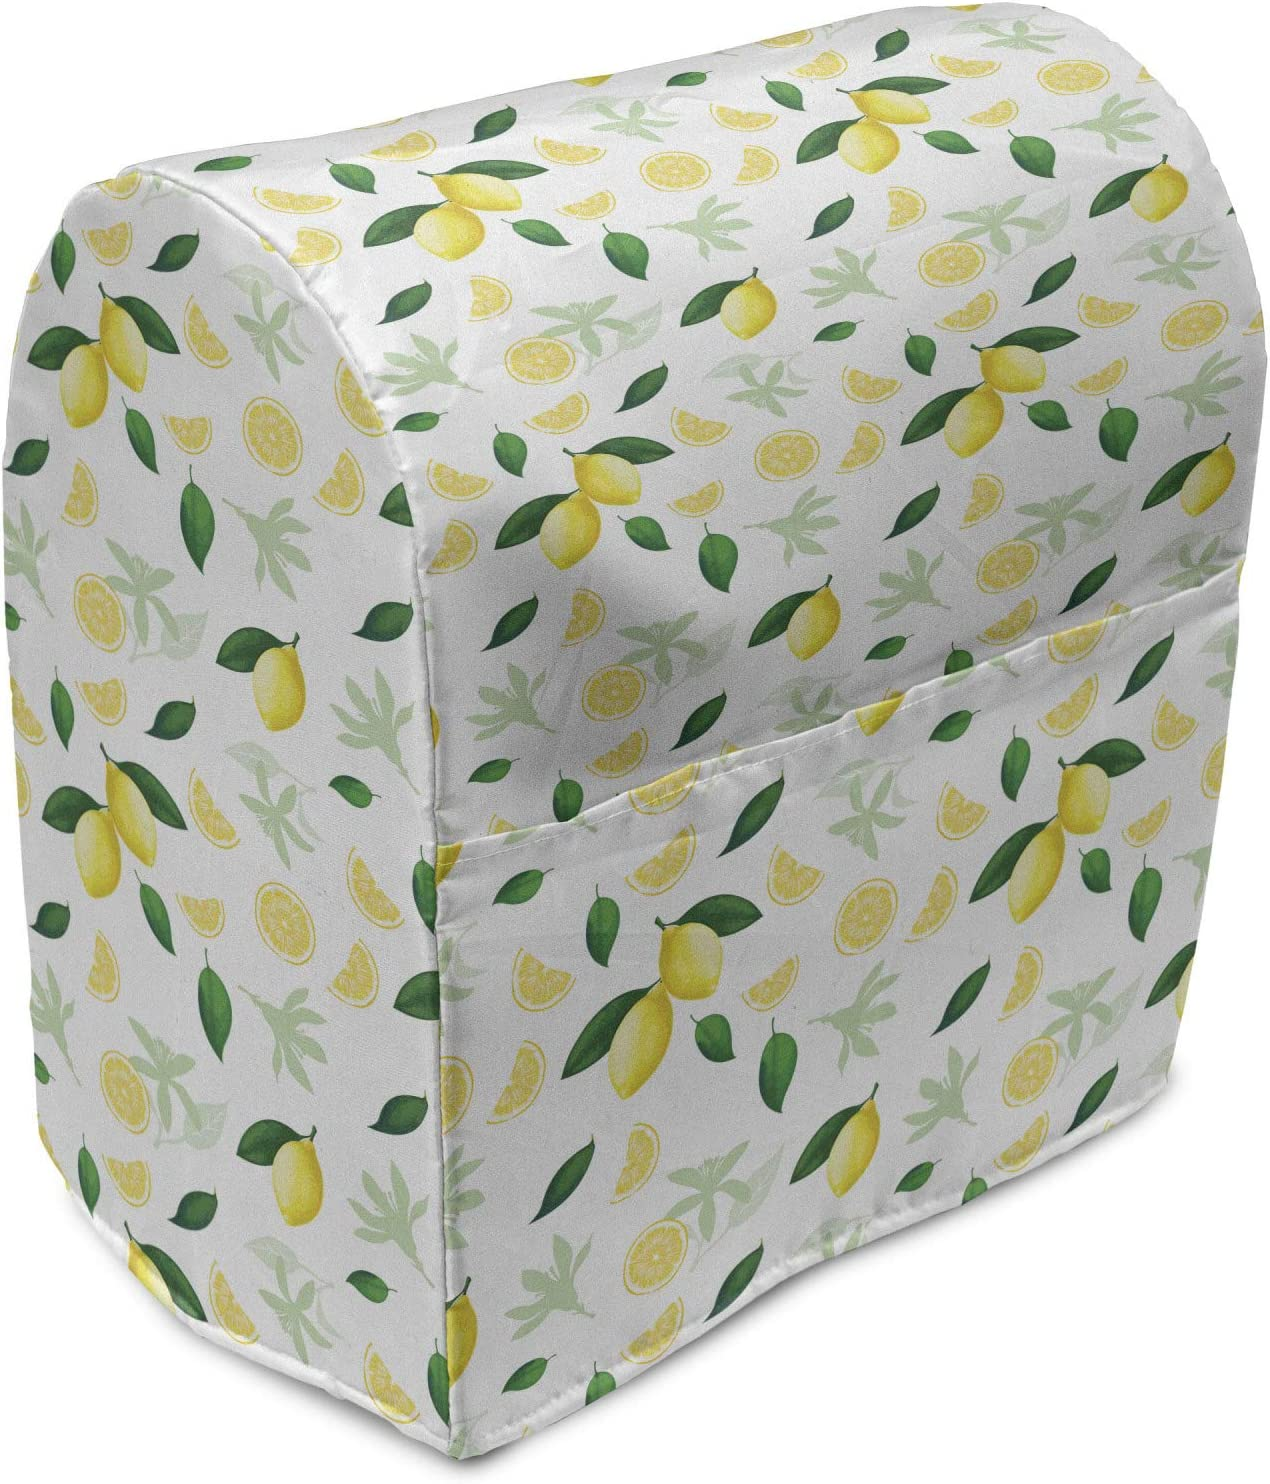 Ambesonne Lemon Stand Mixer Cover, Summer Tree Branches Ripe Slices Freshness Juicy Delicious Lemonade Motif, Kitchen Appliance Organizer Bag Cover with Pockets, 6-8 Quarts, Yellow Green